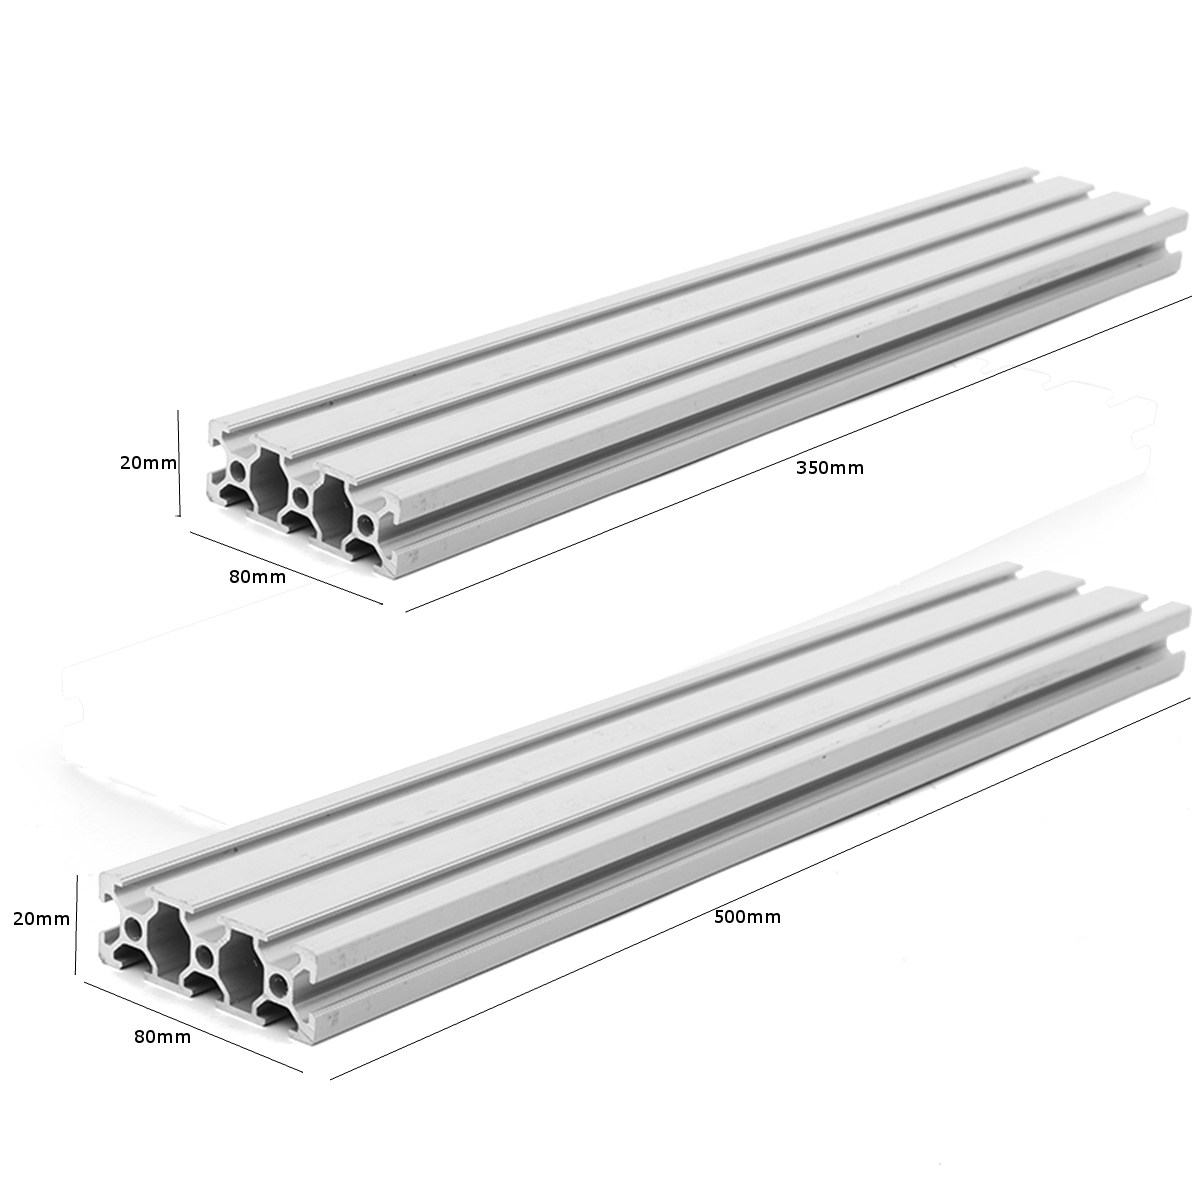 1PC HL2080 Length 350mm / 500mm 2080 T-Slot Aluminum Profiles Extrusion Frame For CNC 3D Printer Parts DIY High Quality high quality 500mm length 4040 double t slot aluminum profiles extrusion frame based on 2020 for cnc 3d printers plasma lasers